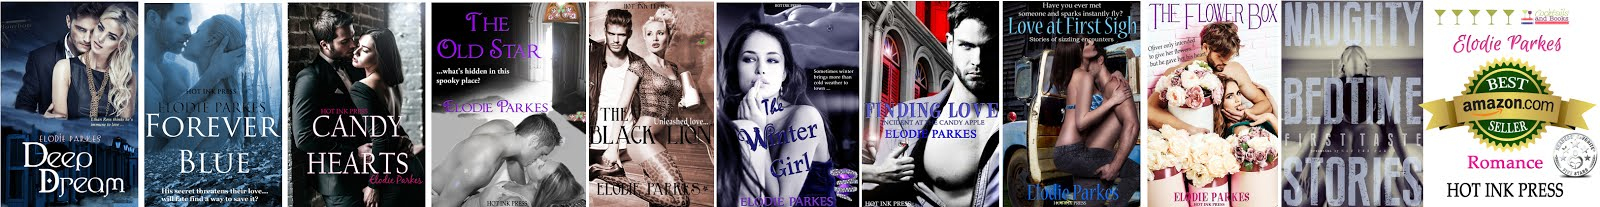 Elodie Parkes erotic romance from Hot Ink Press